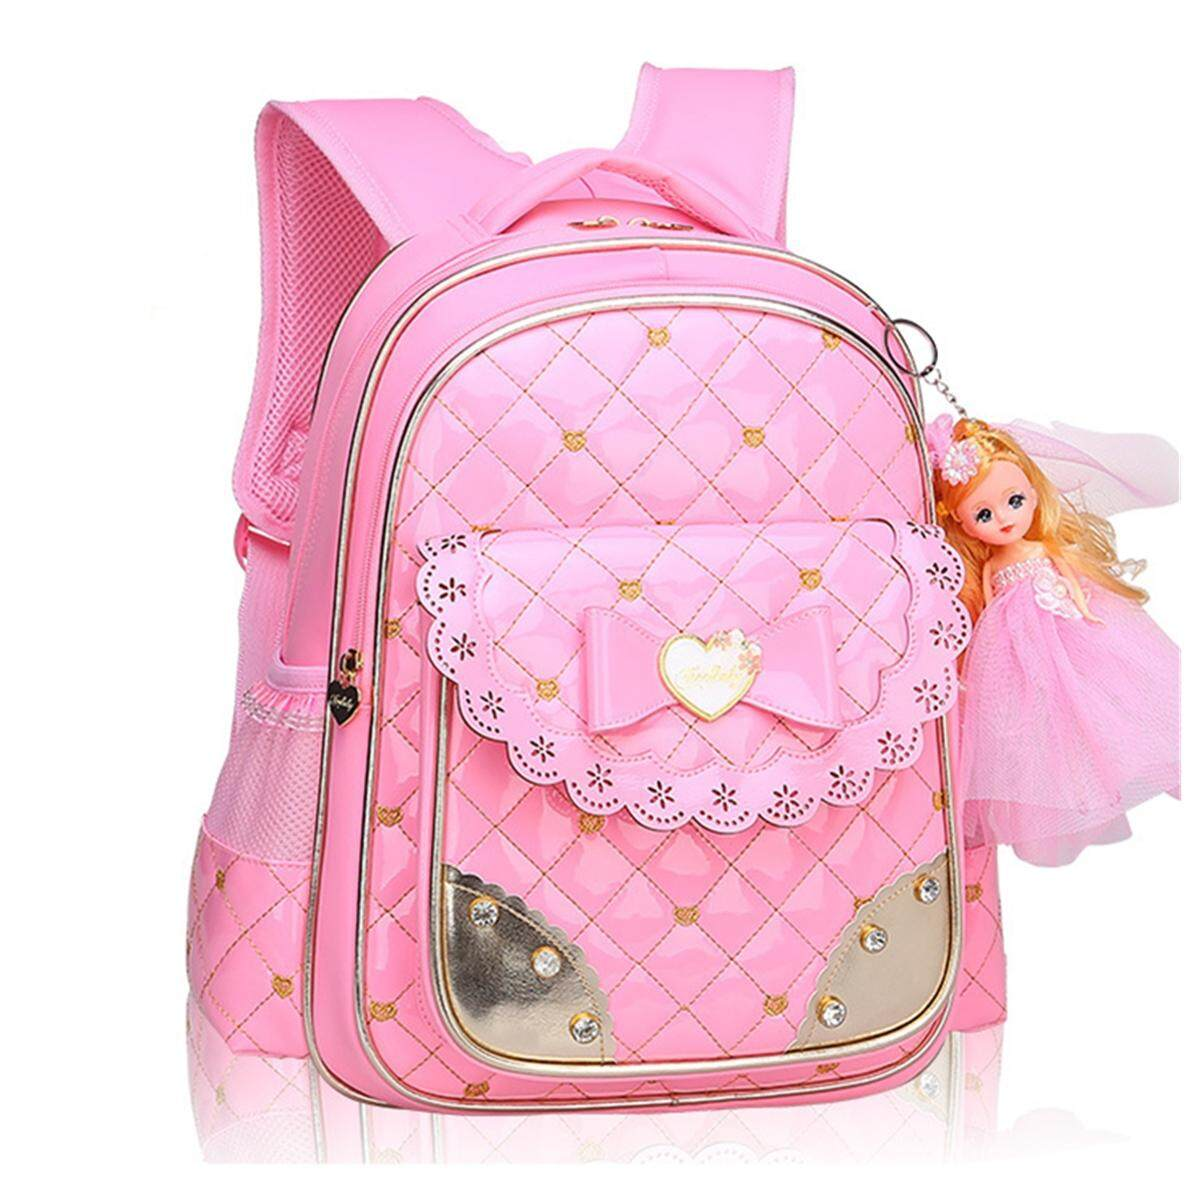 76b820e51 Children Leather School Backpack Bag Primary Girls Students Travel Rucksack  Doll Small Size By Glimmer.